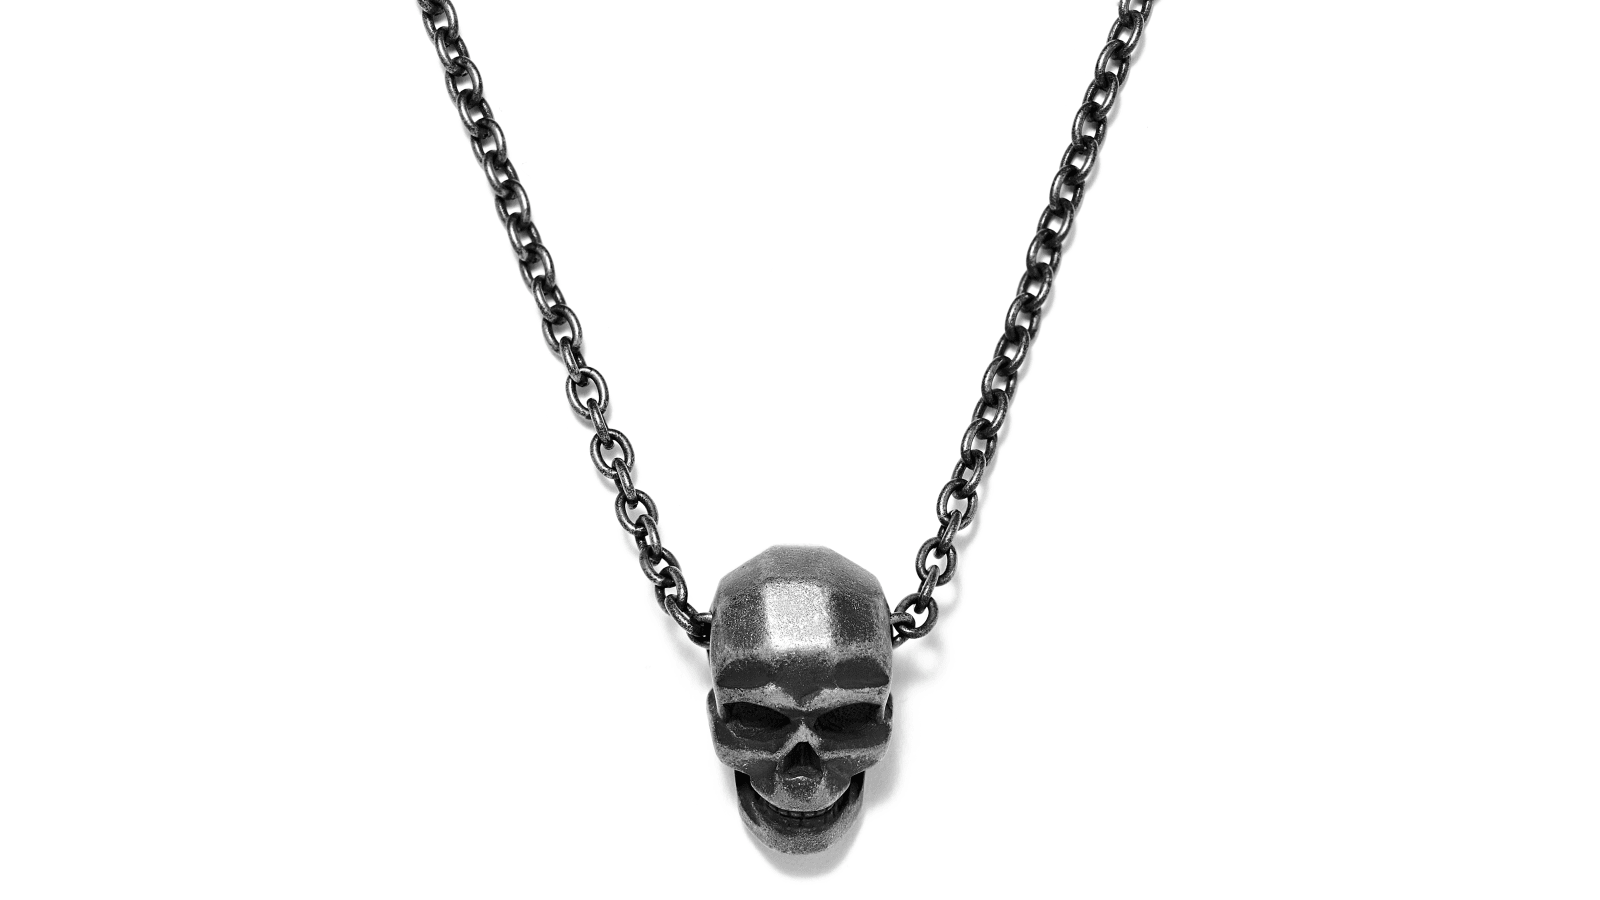 Few tips for choosing the perfect skull jewelry